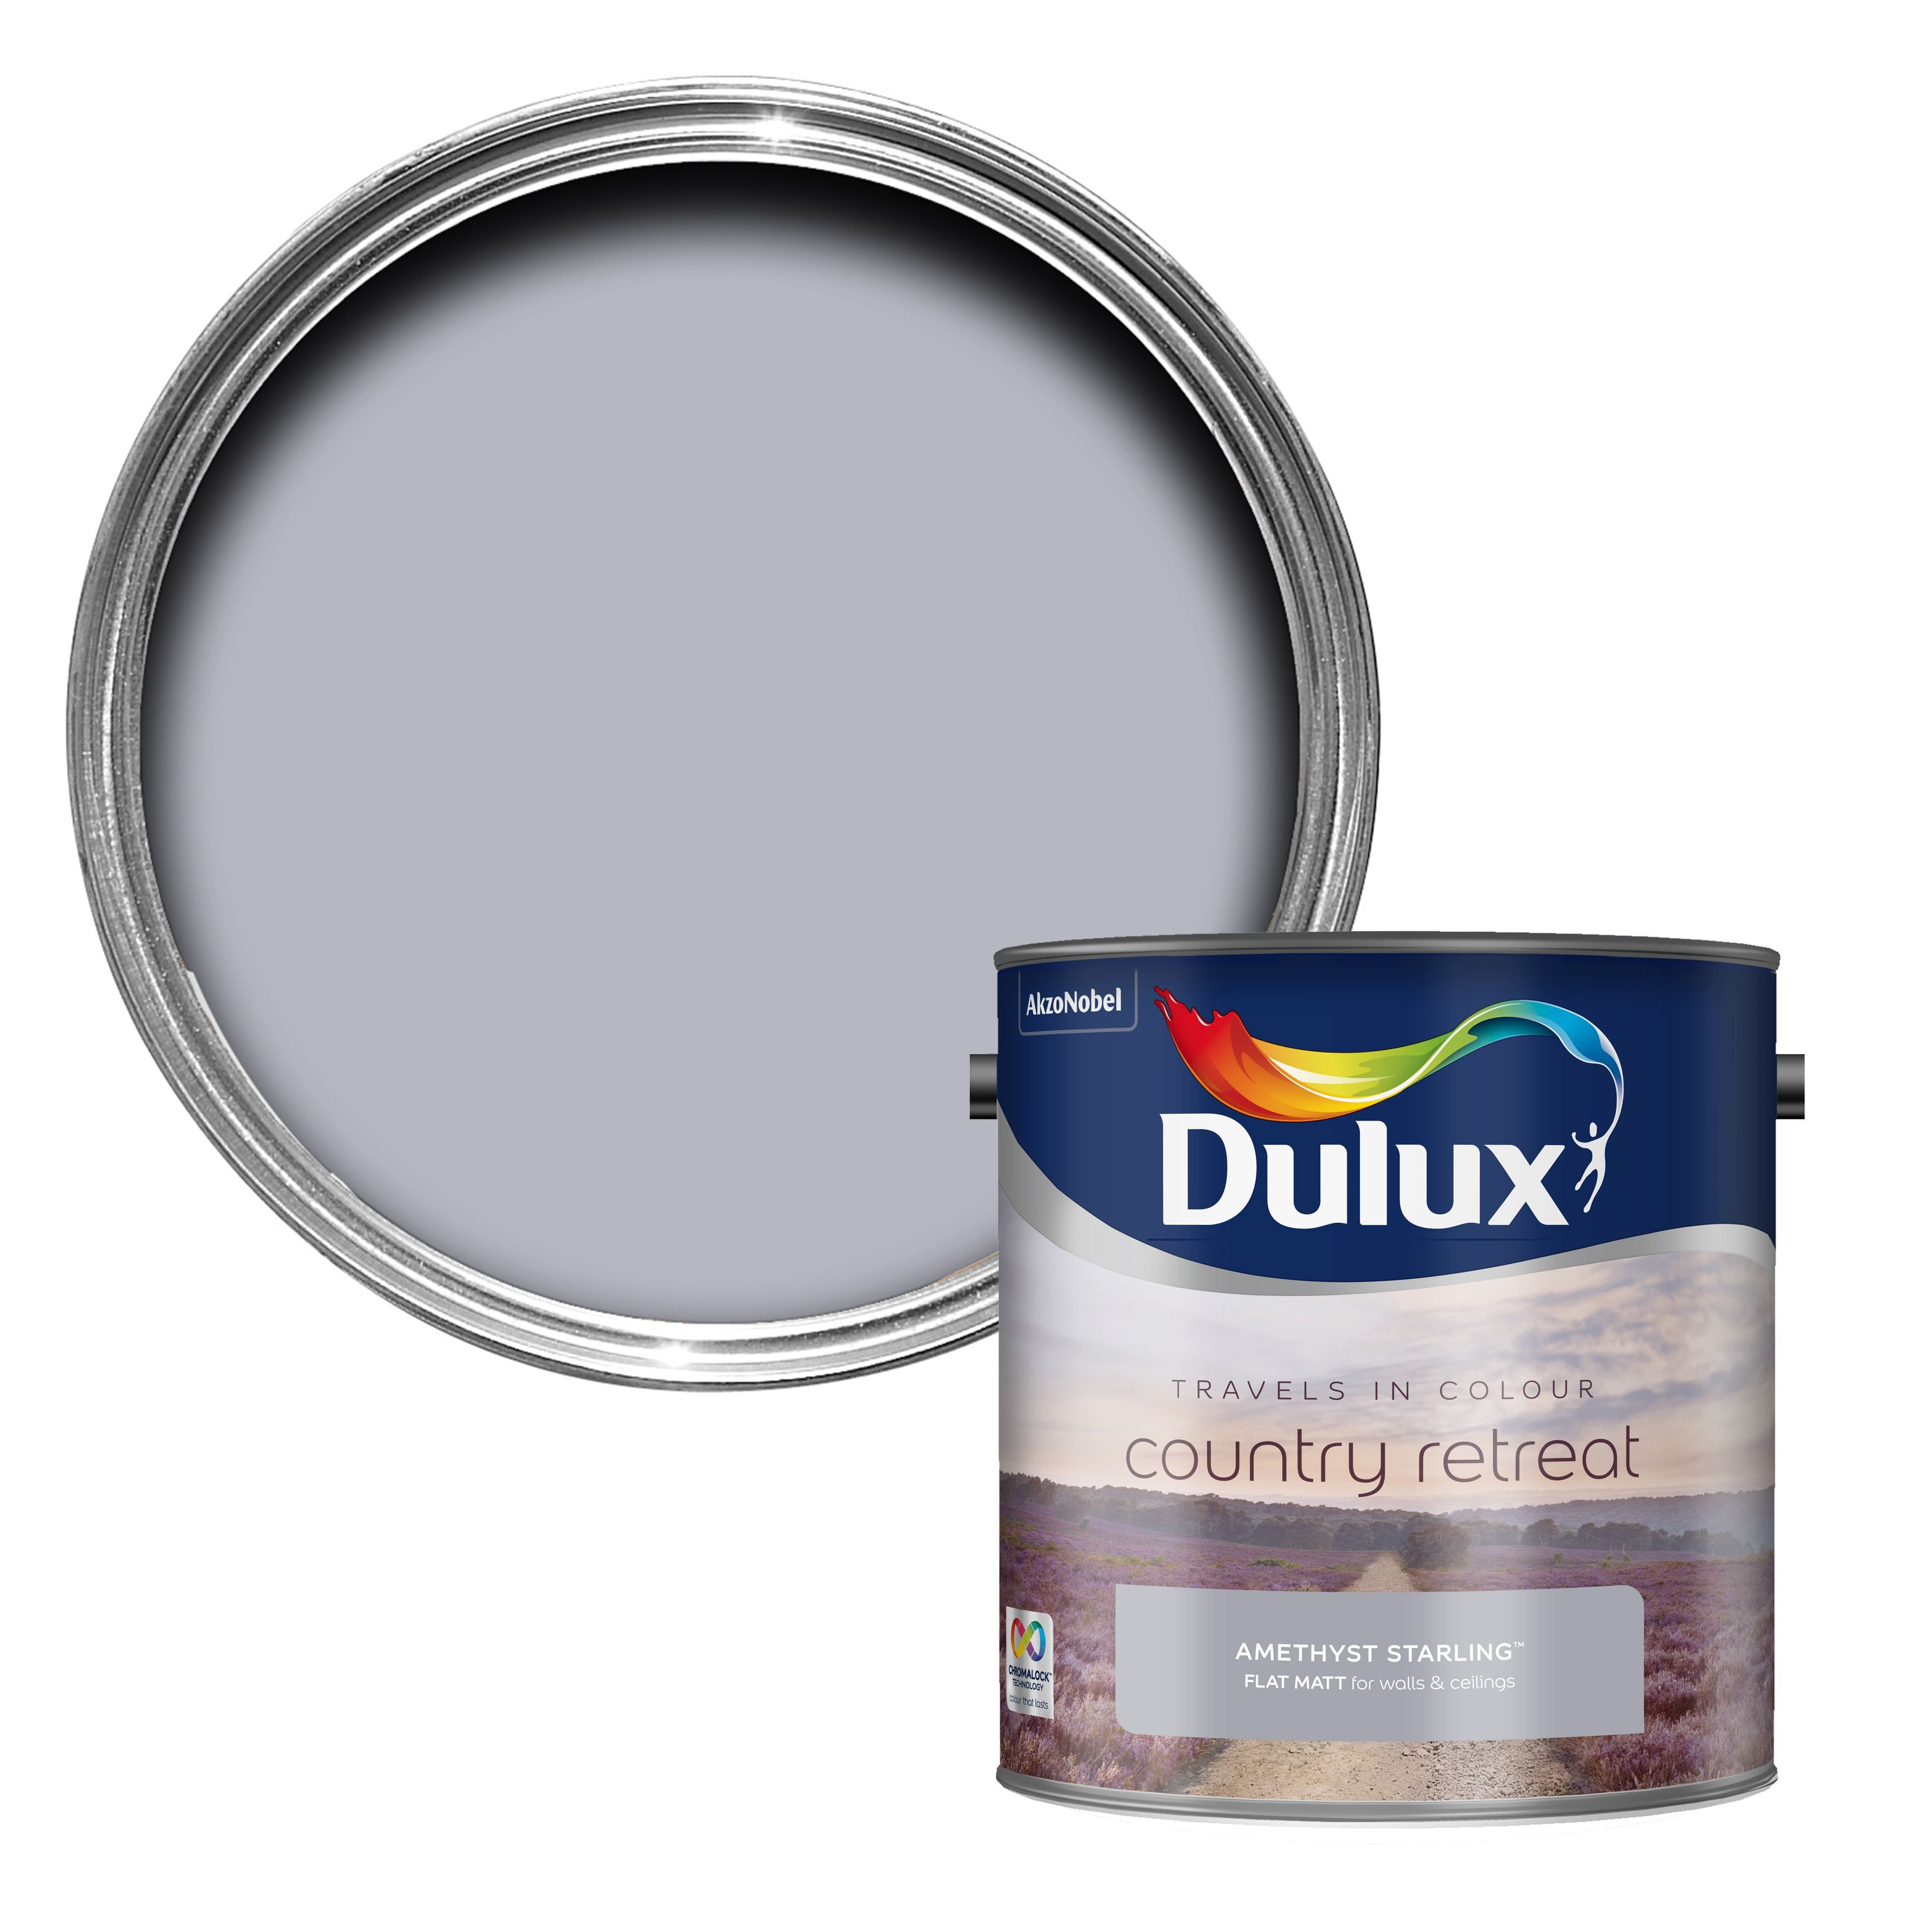 Dulux travels in colour amethyst starling purple matt emulsion paint 2 5l departments diy at b q - Dulux grey exterior paint collection ...